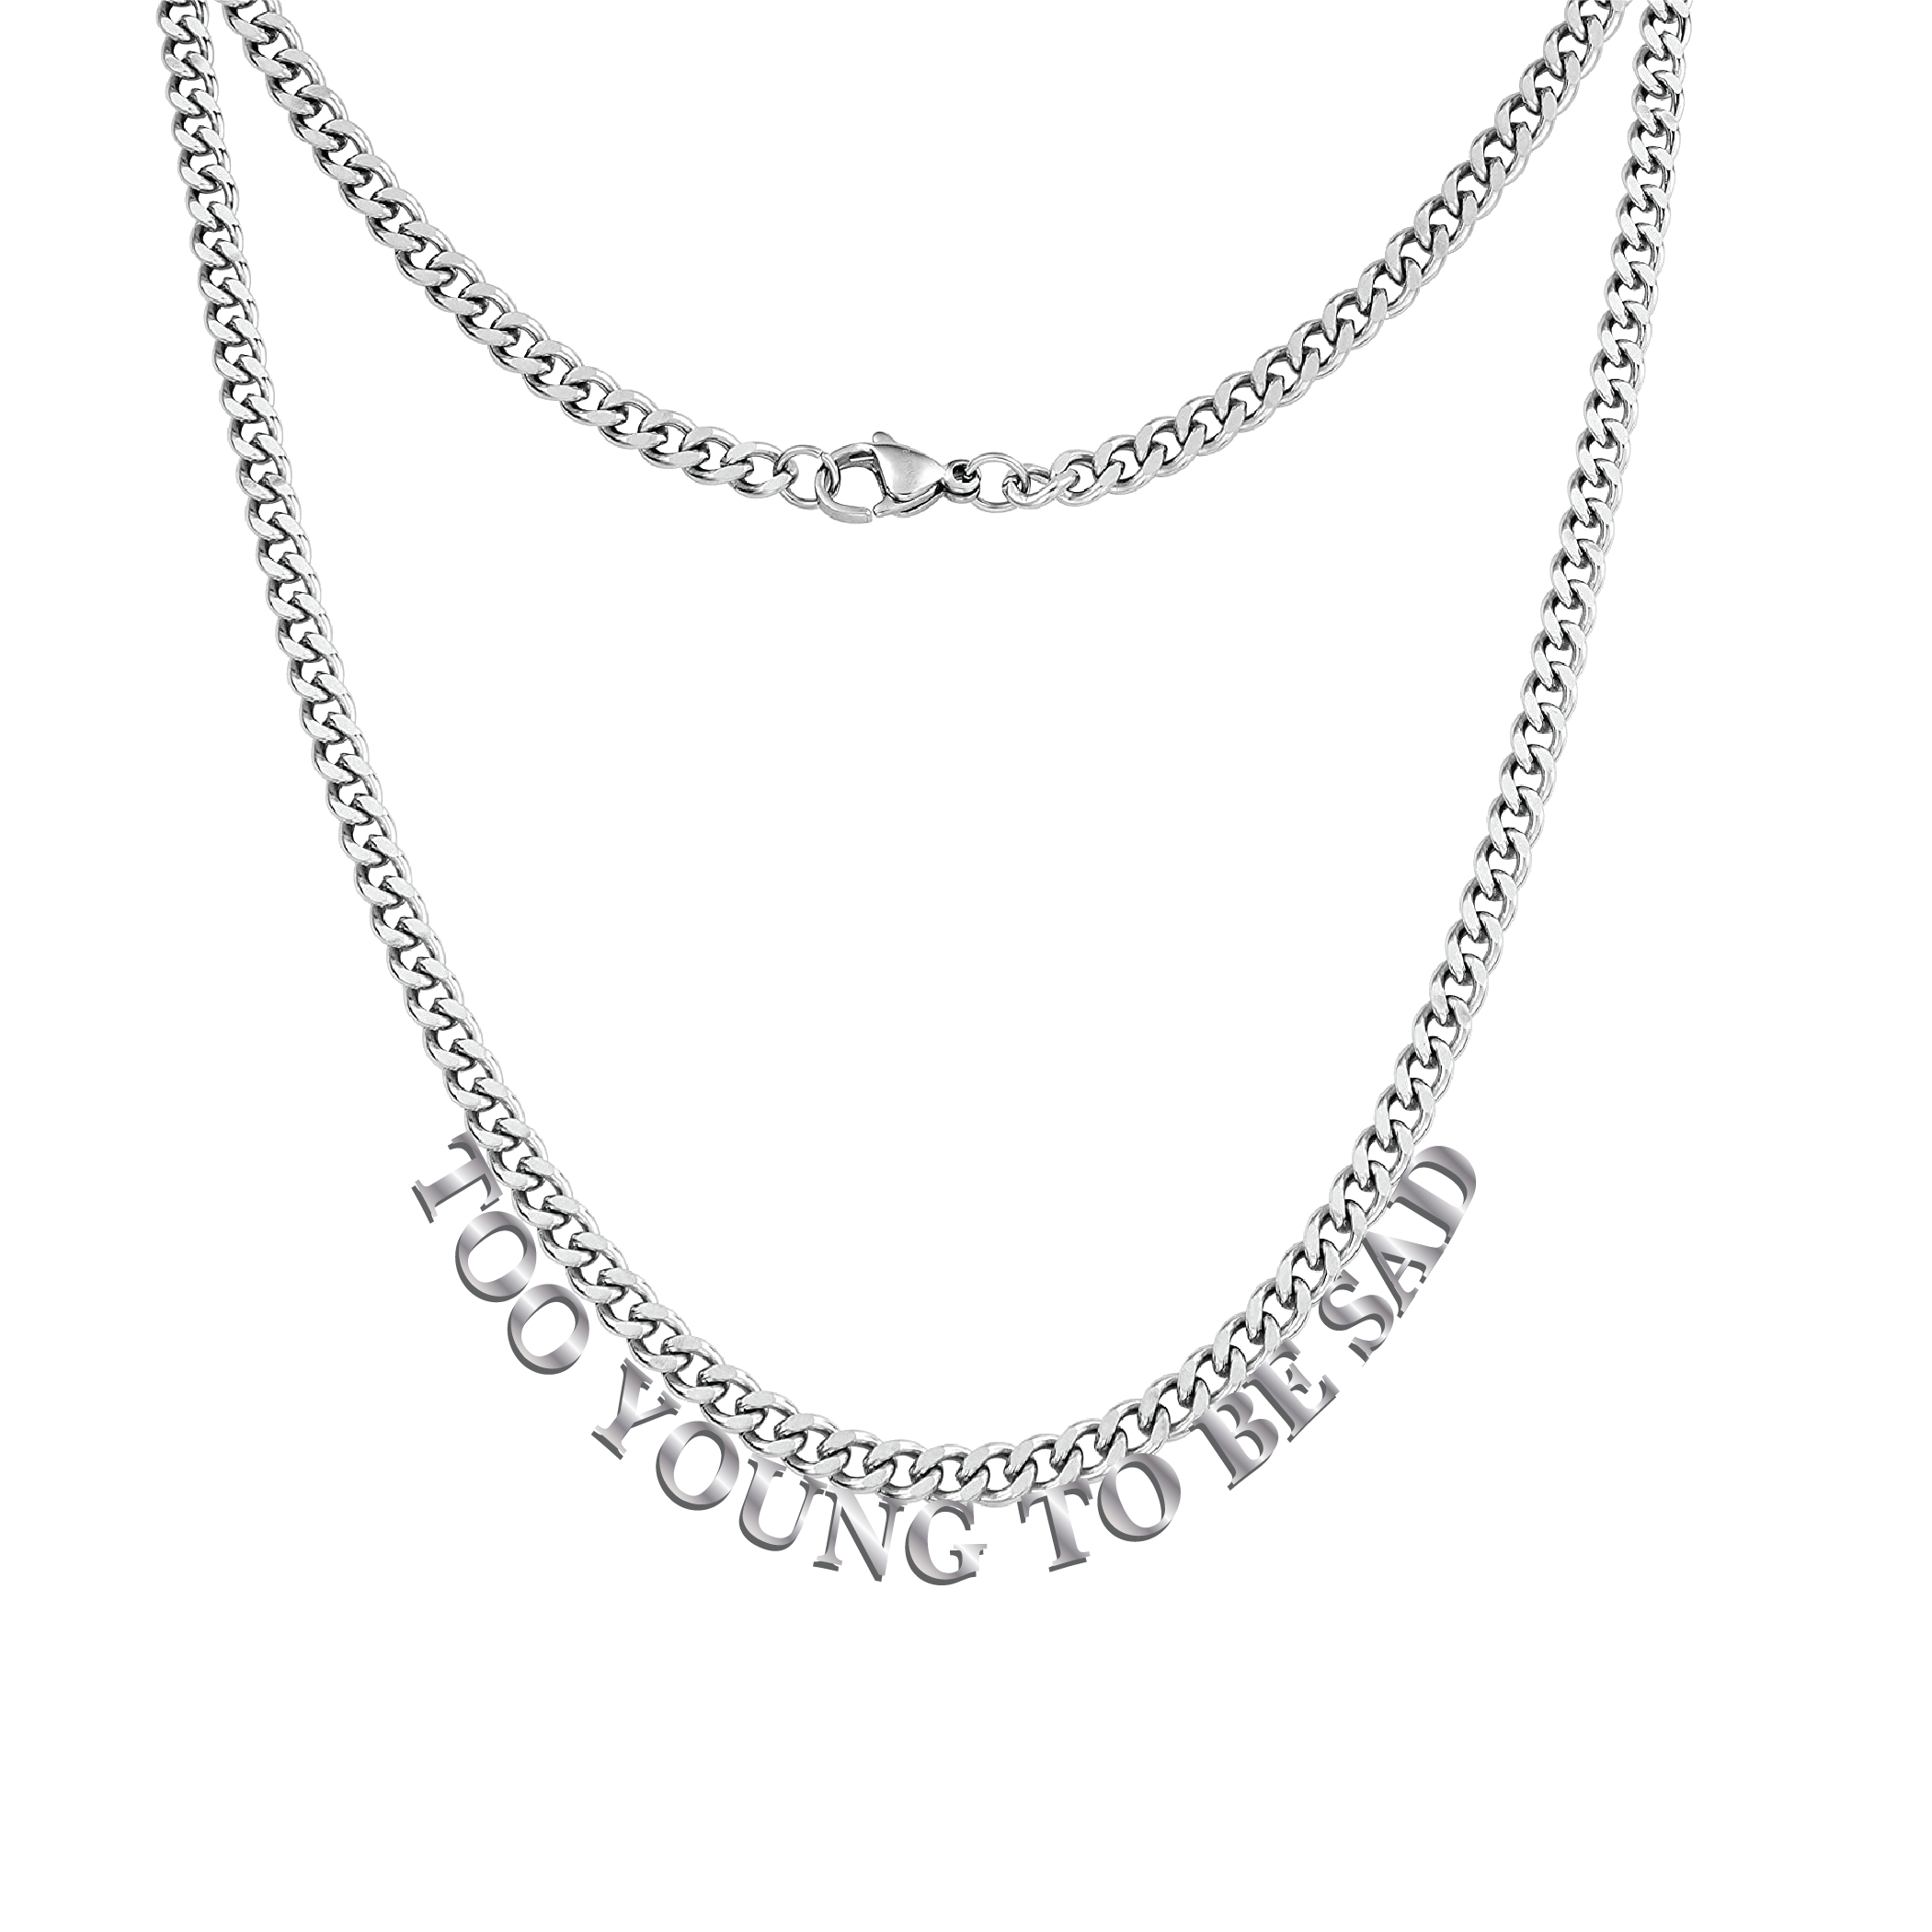 TYTBS Necklace